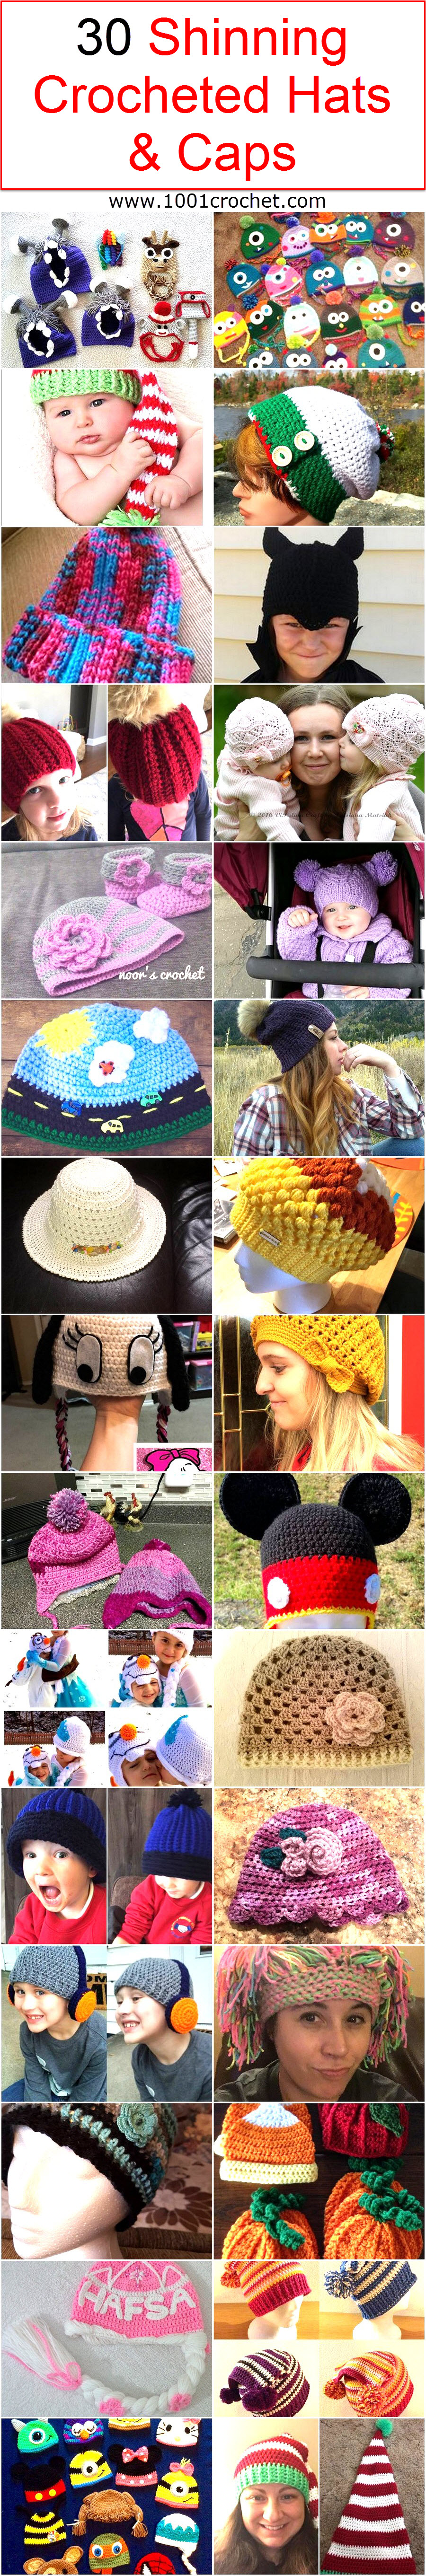 30-shinning-crocheted-hats-caps